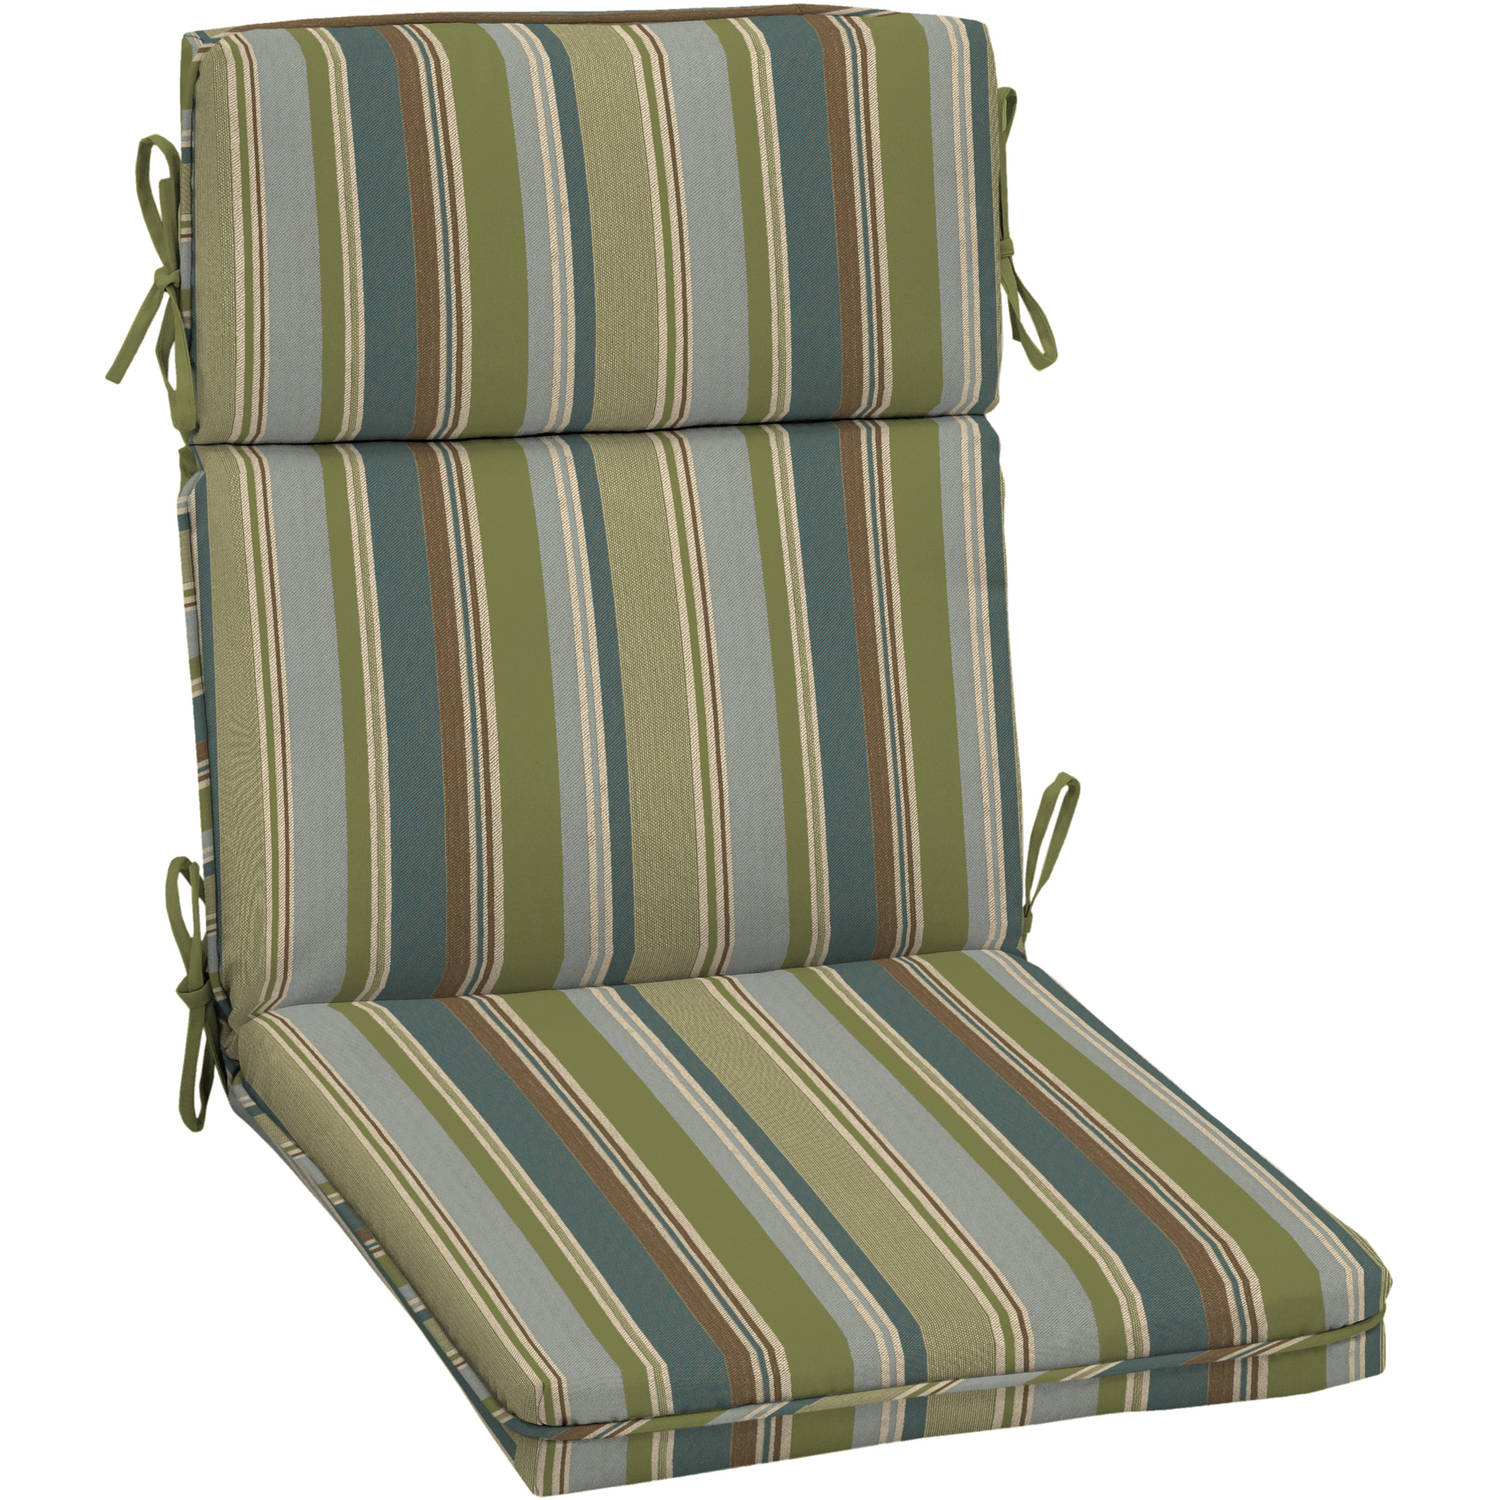 Better Homes And Gardens Outdoor Dining Chair Cushion With Welt    Walmart.com